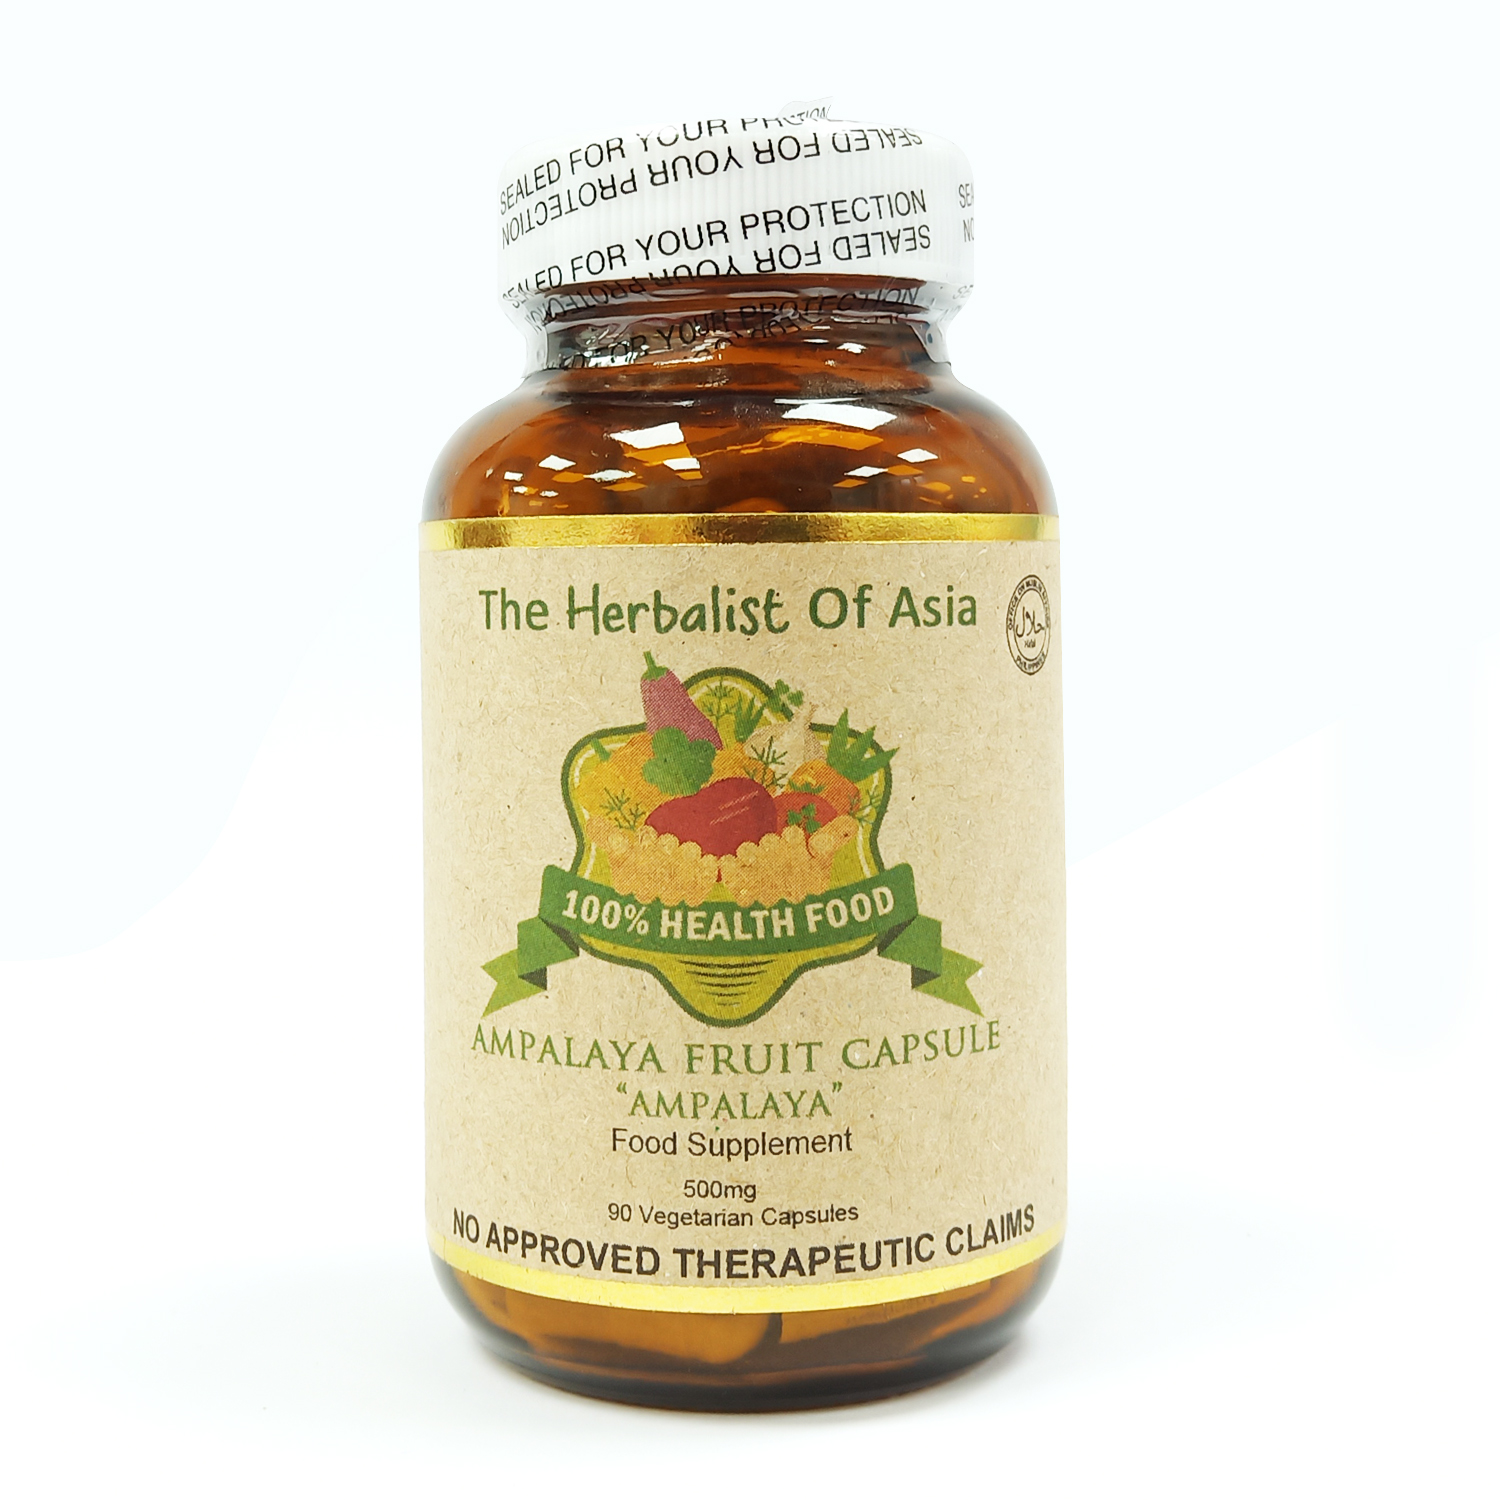 The Herbalist Of Asia Ampalaya Capsule